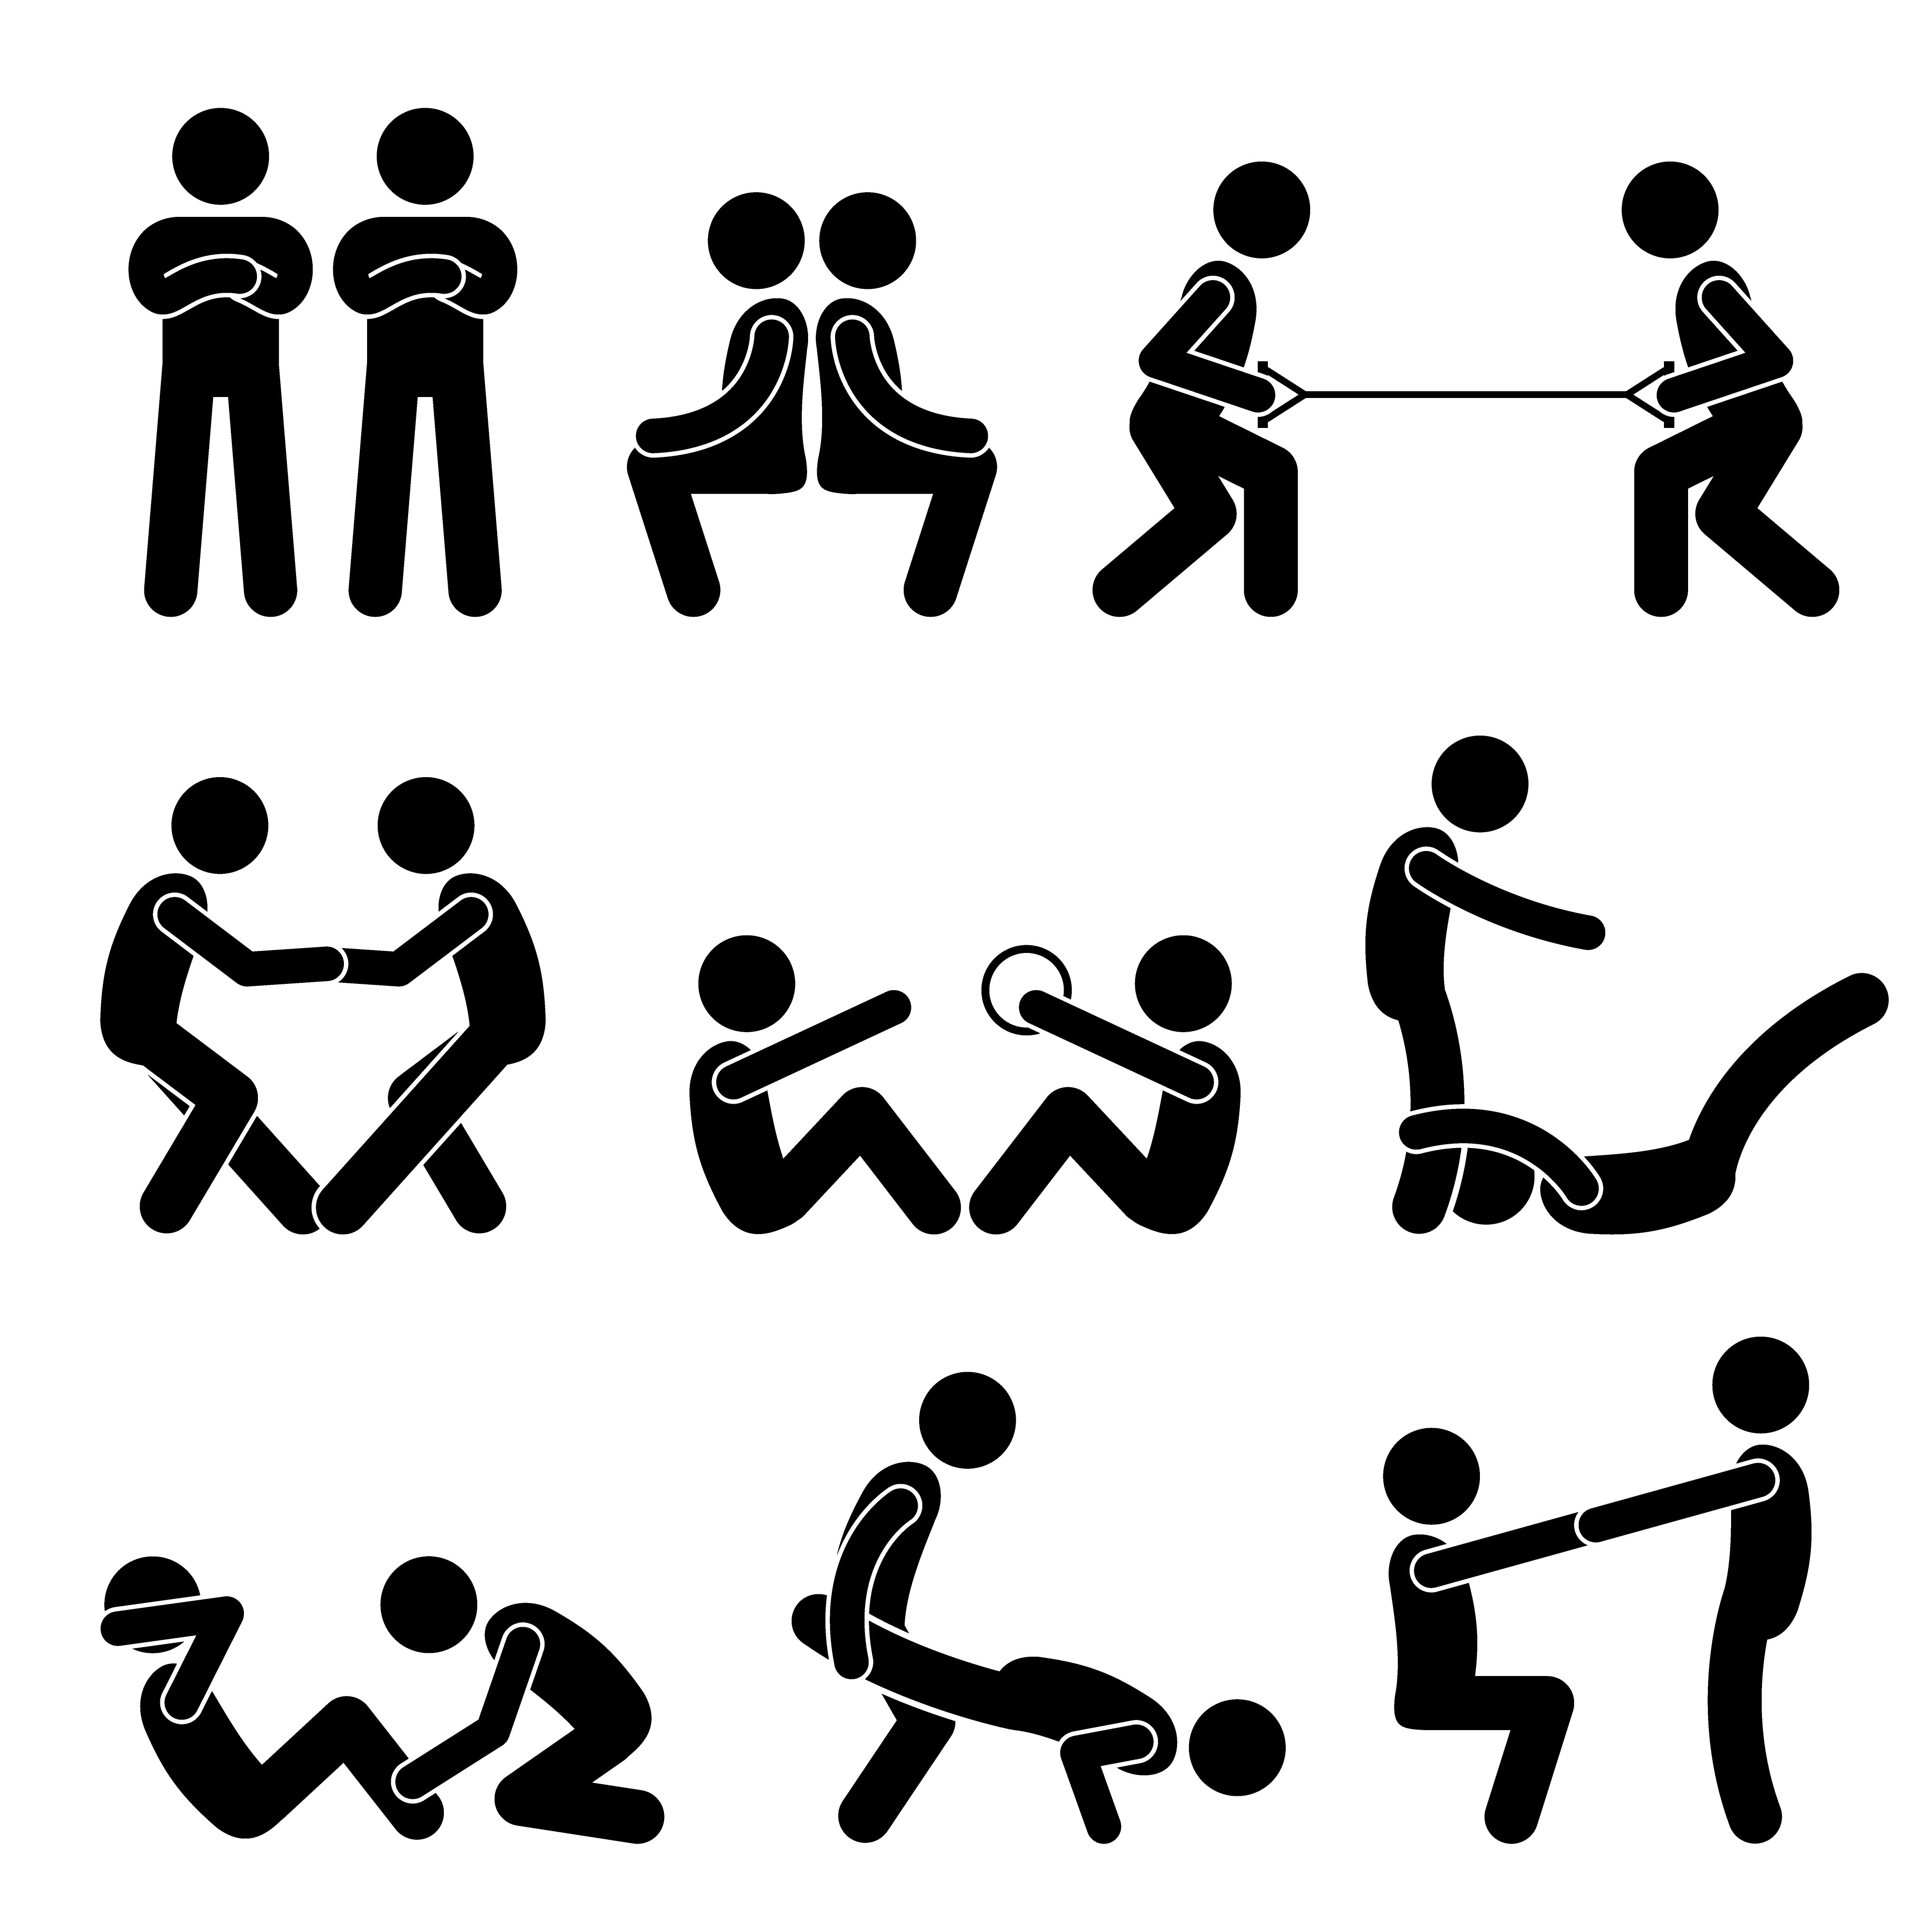 Exercise Workout with a Partner Stick Figure Pictogram